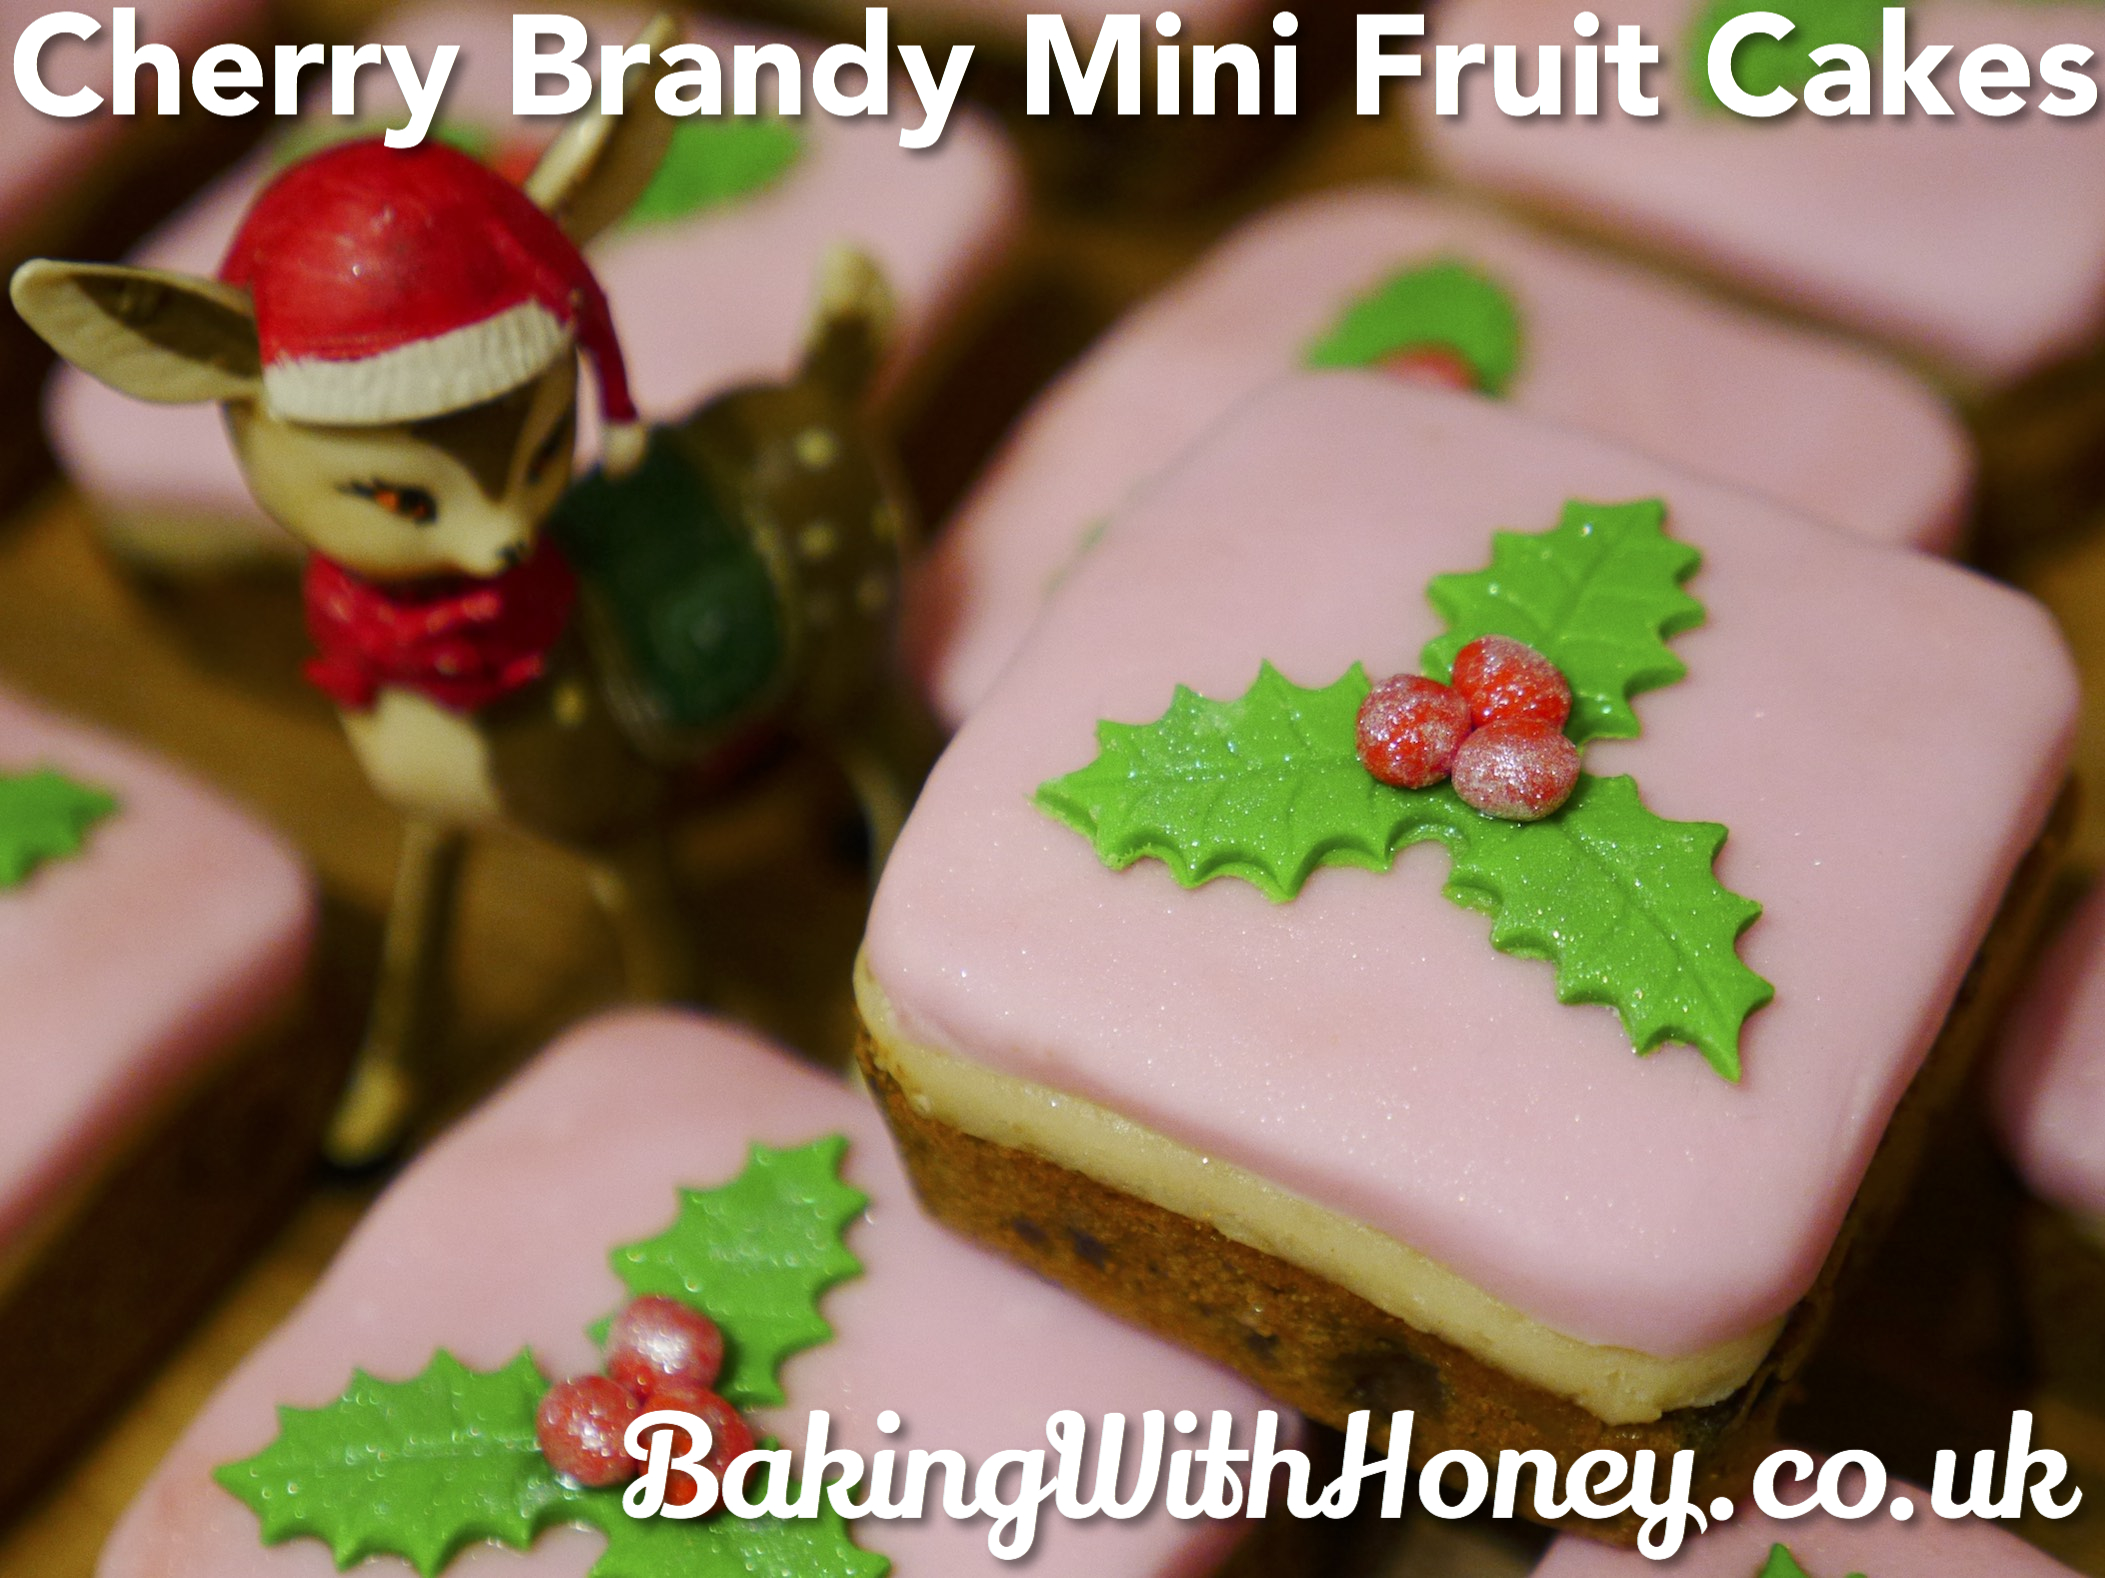 Mini Cherry Brandy Fruit Cakes